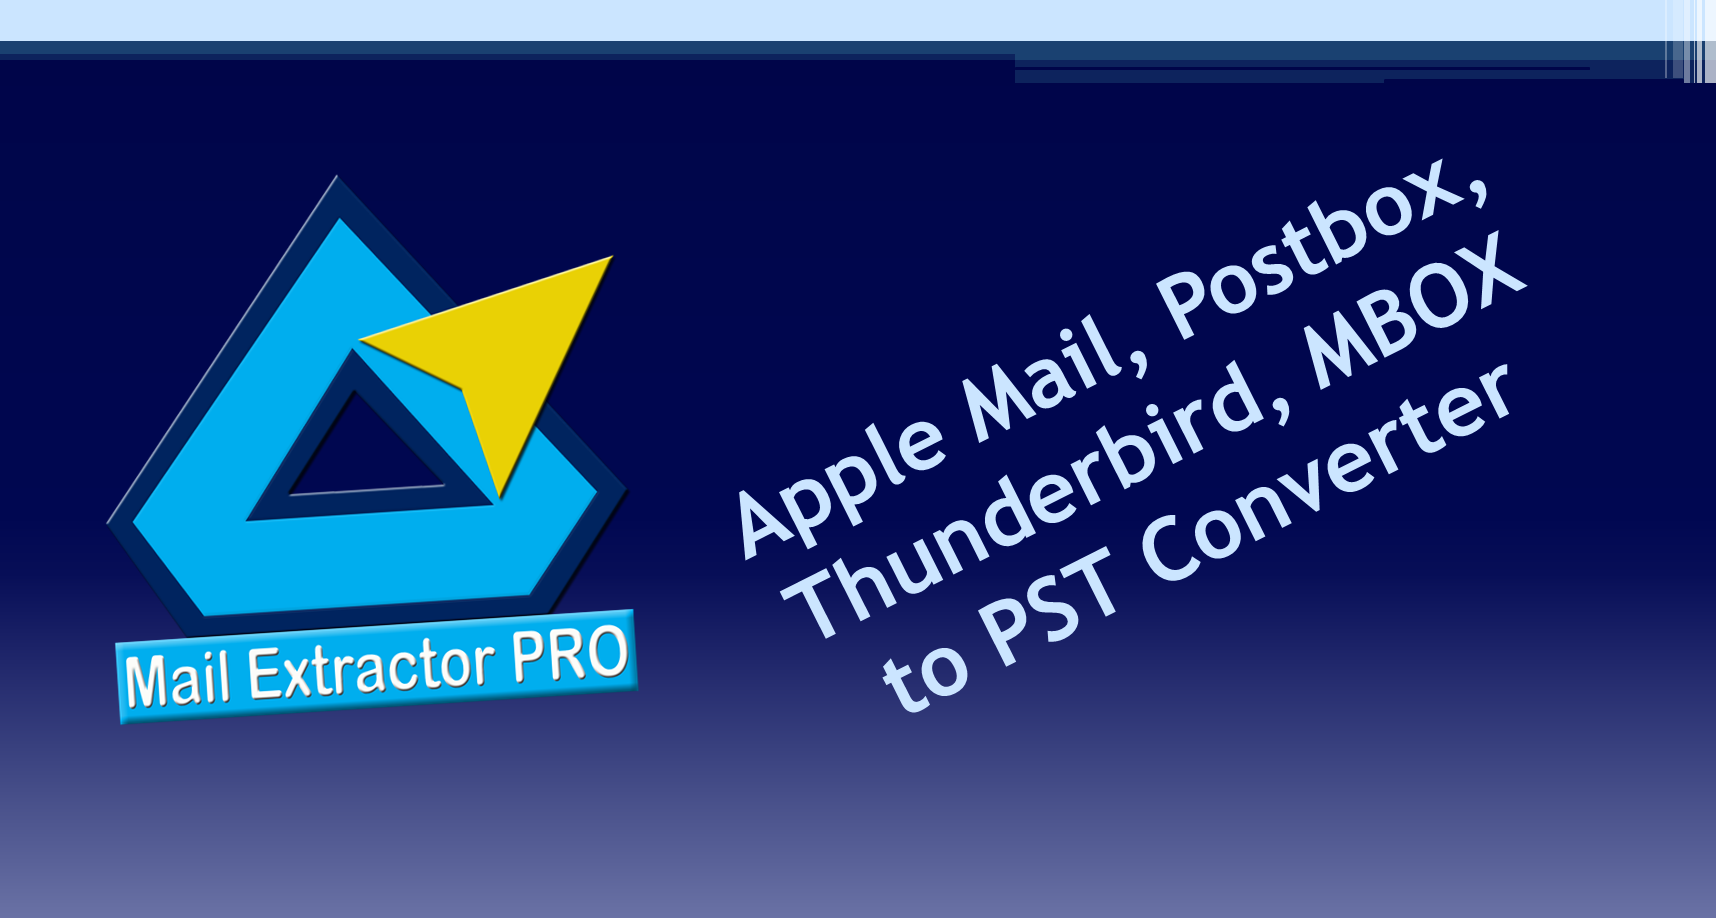 Gmail MBOX to PST Converter for Mac OS X (Easy, Fast & Accurate)